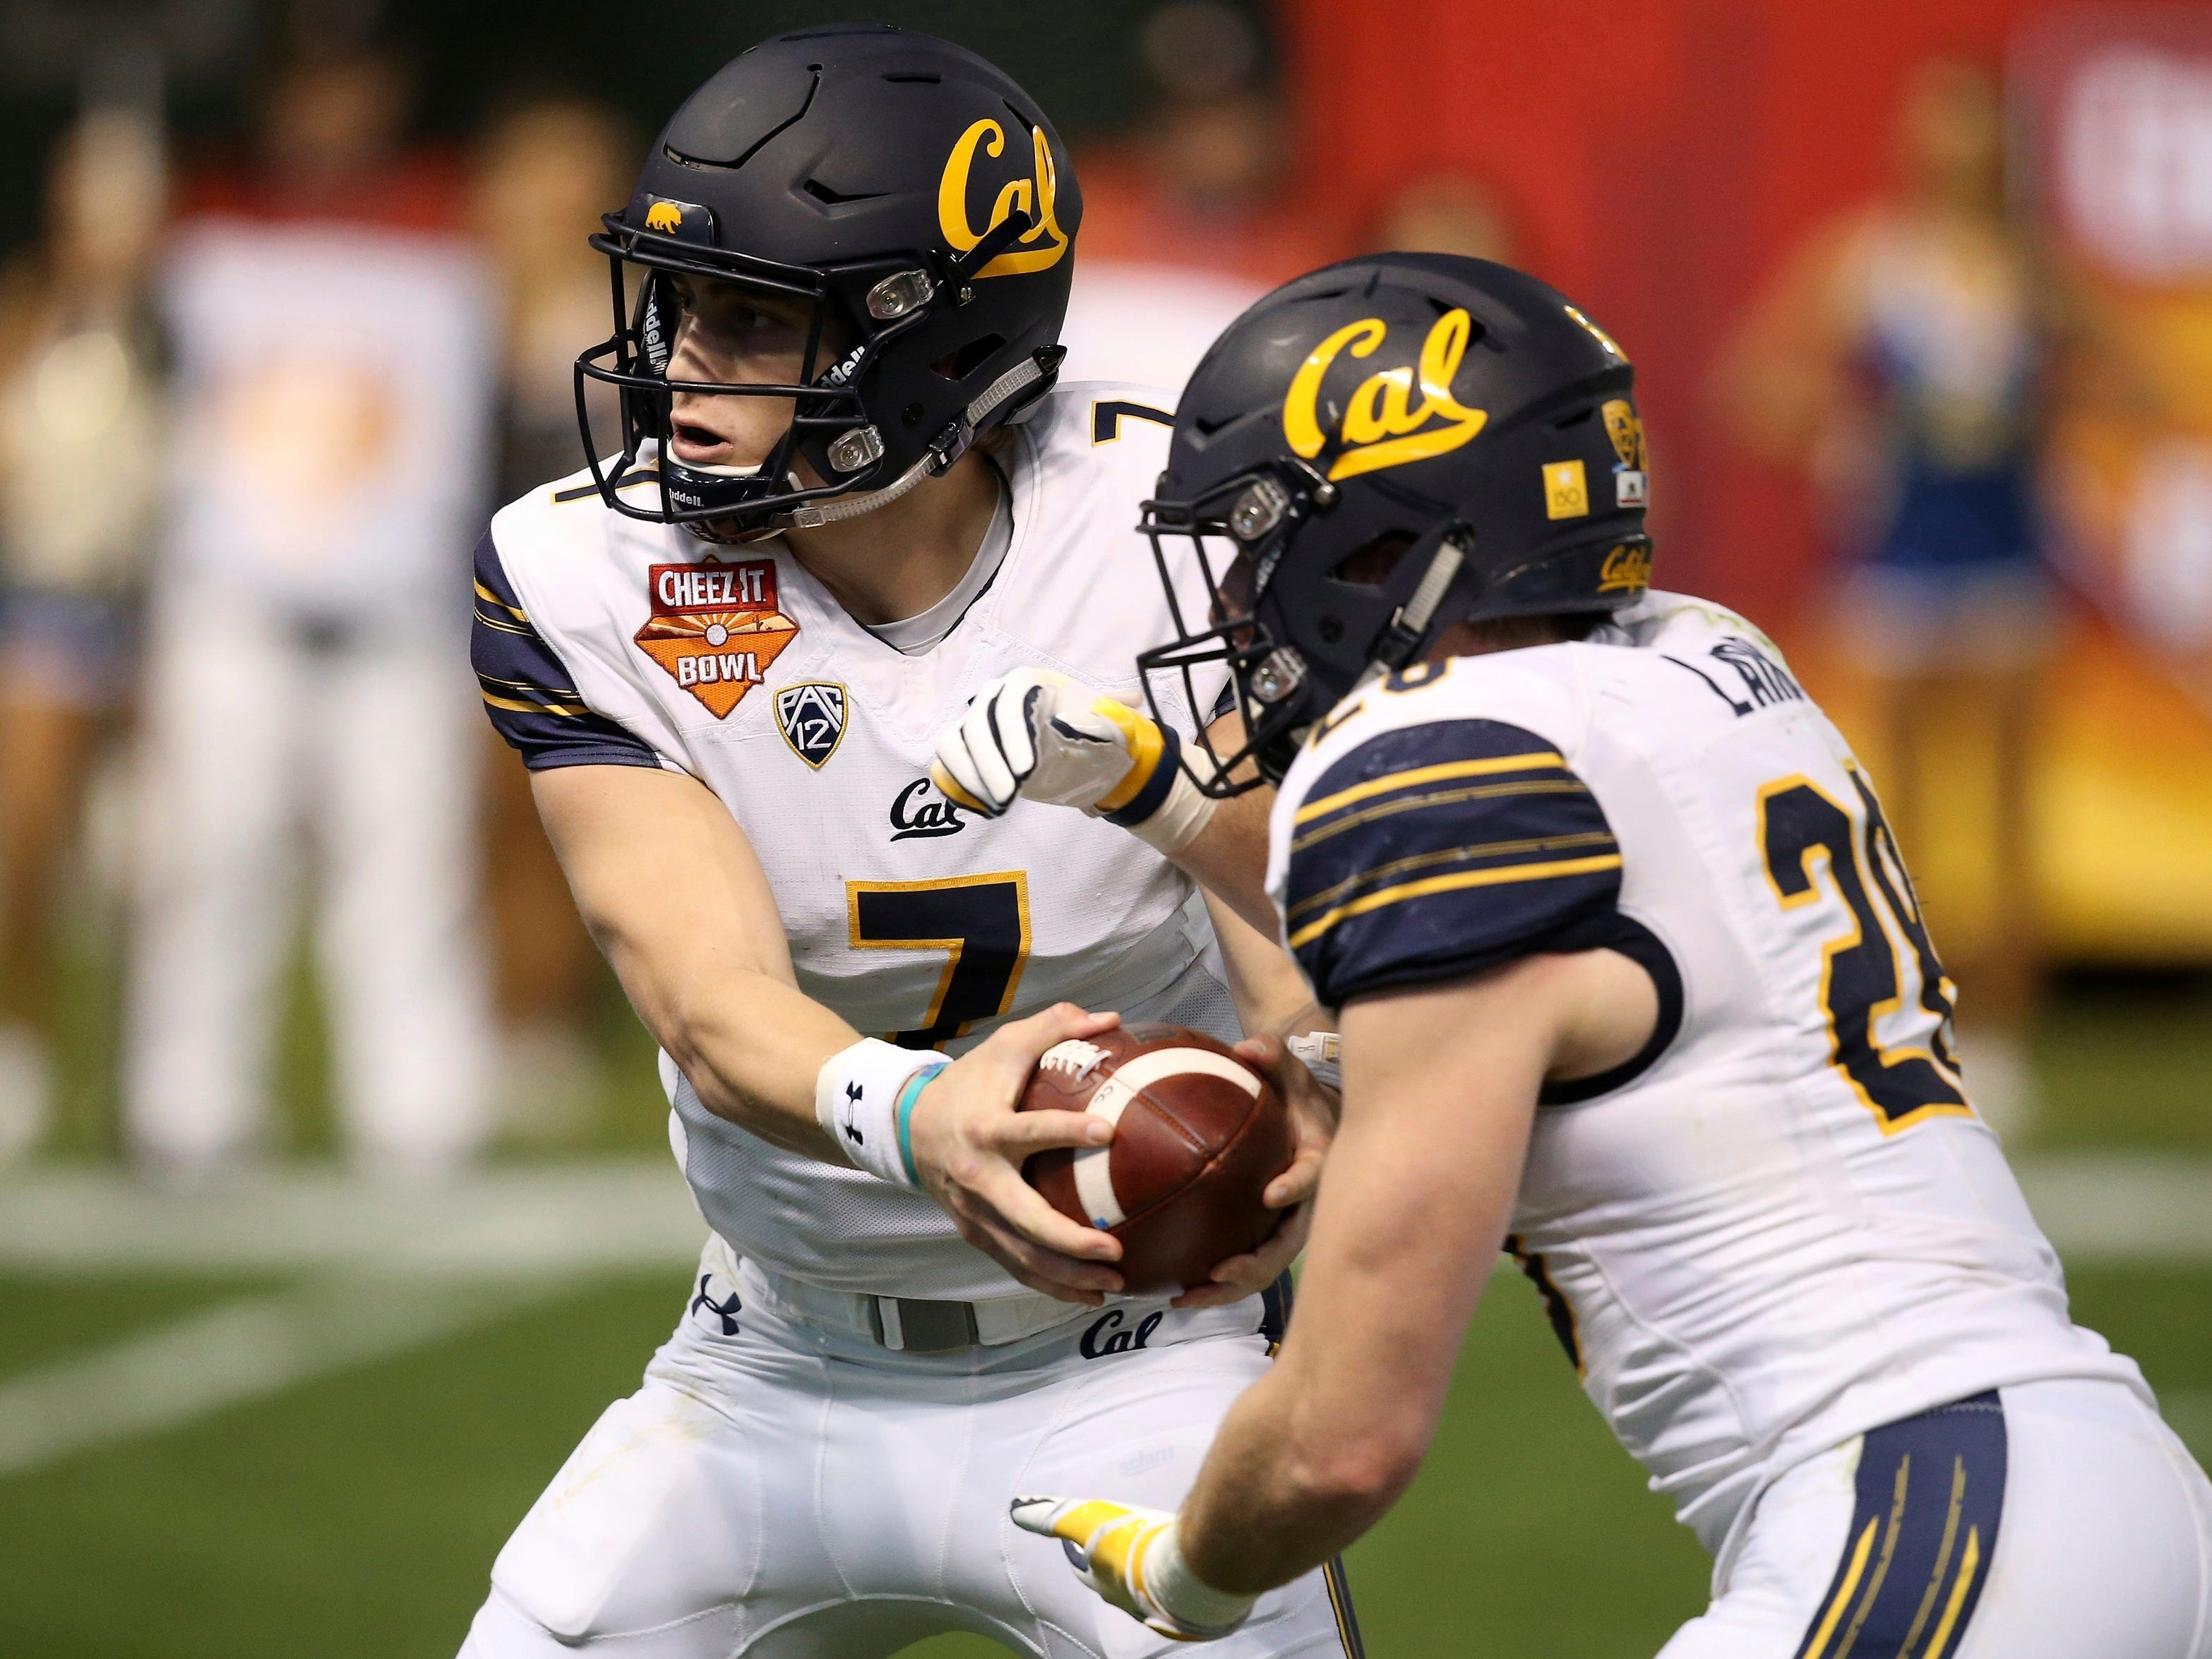 California quarterback Chase Garbers (7) hands the ball off to running back Patrick Laird (28) during the first half of the Cheez-It Bowl NCAA college football game against TCU on Wednesday, Dec. 26, 2018, in Phoenix.